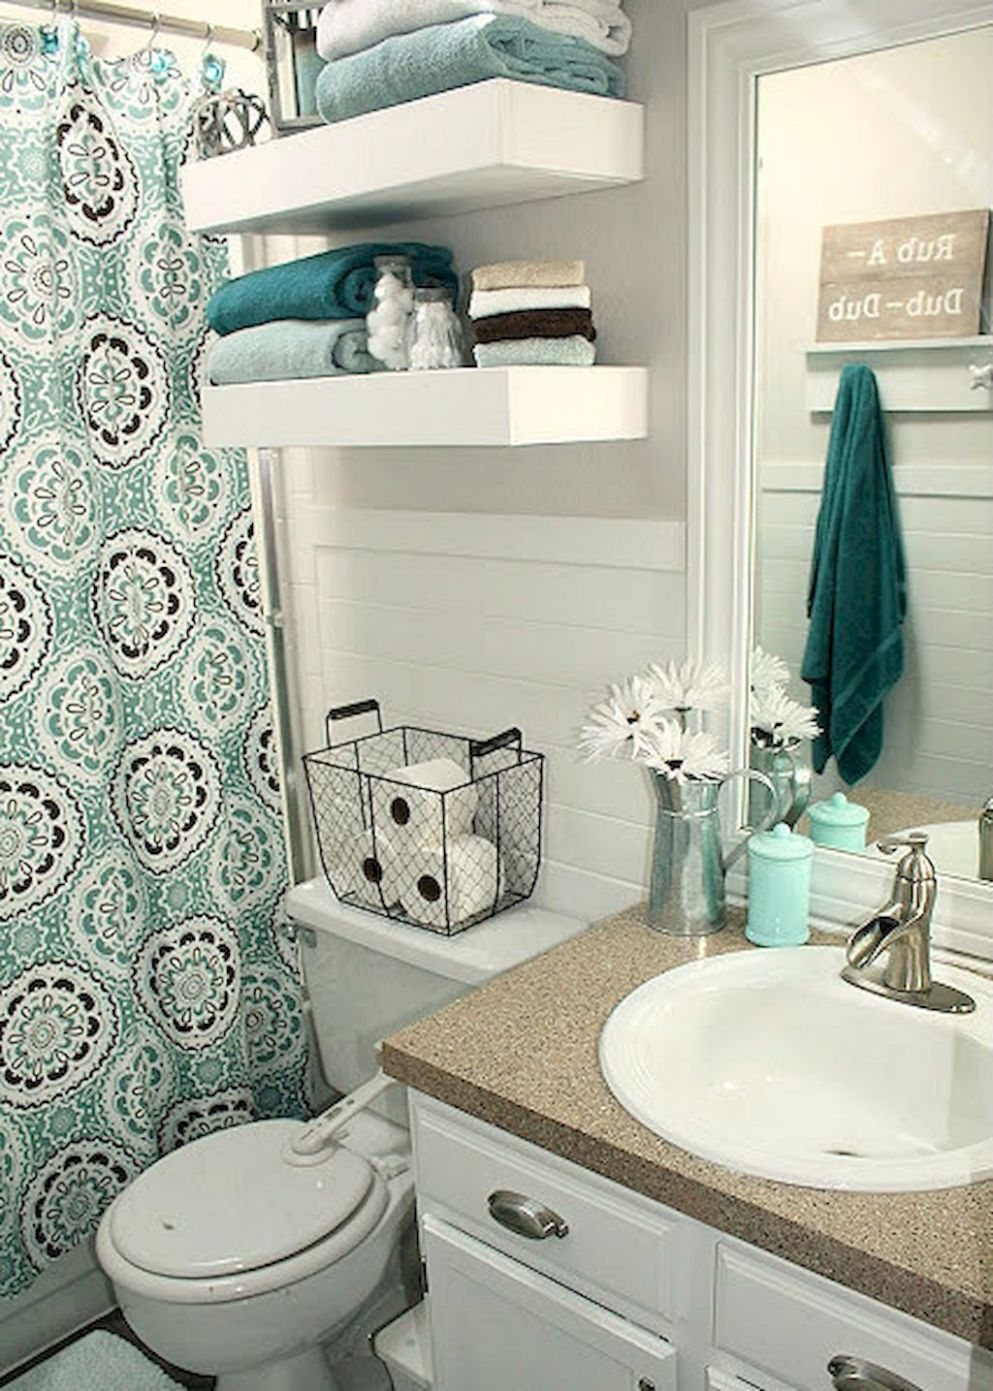 12 DIY Small Apartment Decorating Ideas on a Budget   Small ..